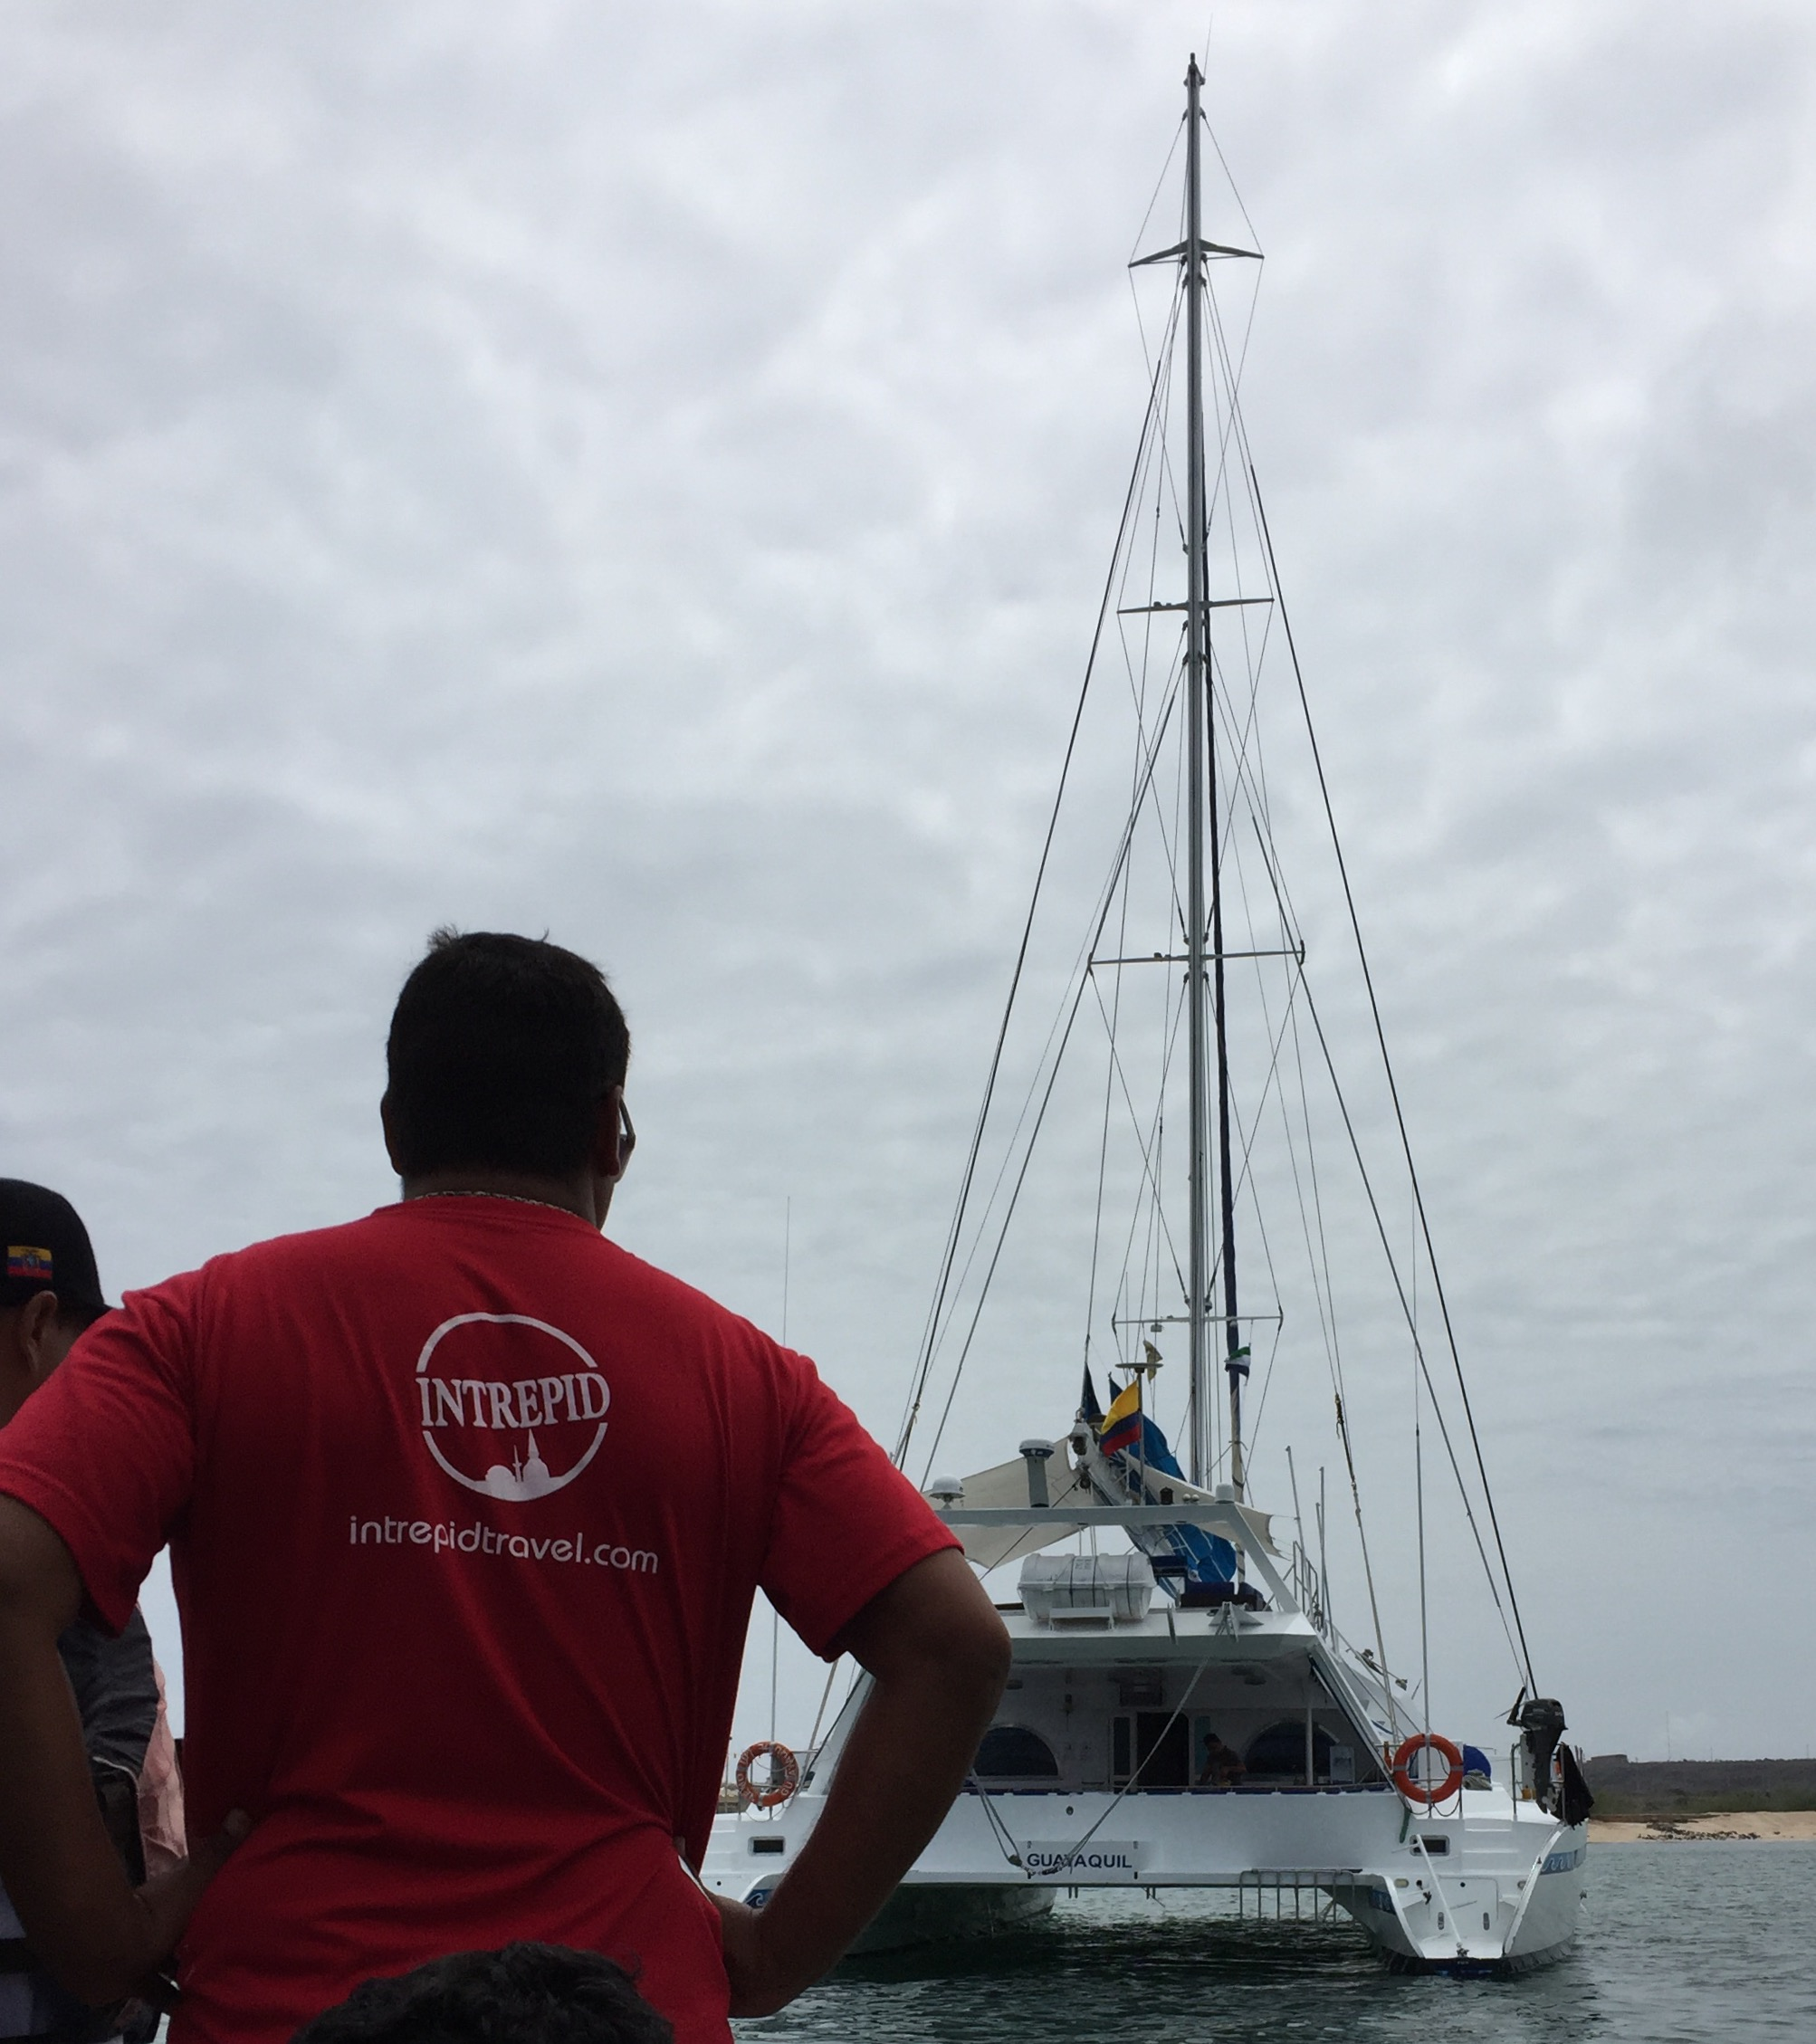 At Baltra, we approach the Nemo III, the 75-foot catamaran that would take us around the Galapagos Islands for 8 days.